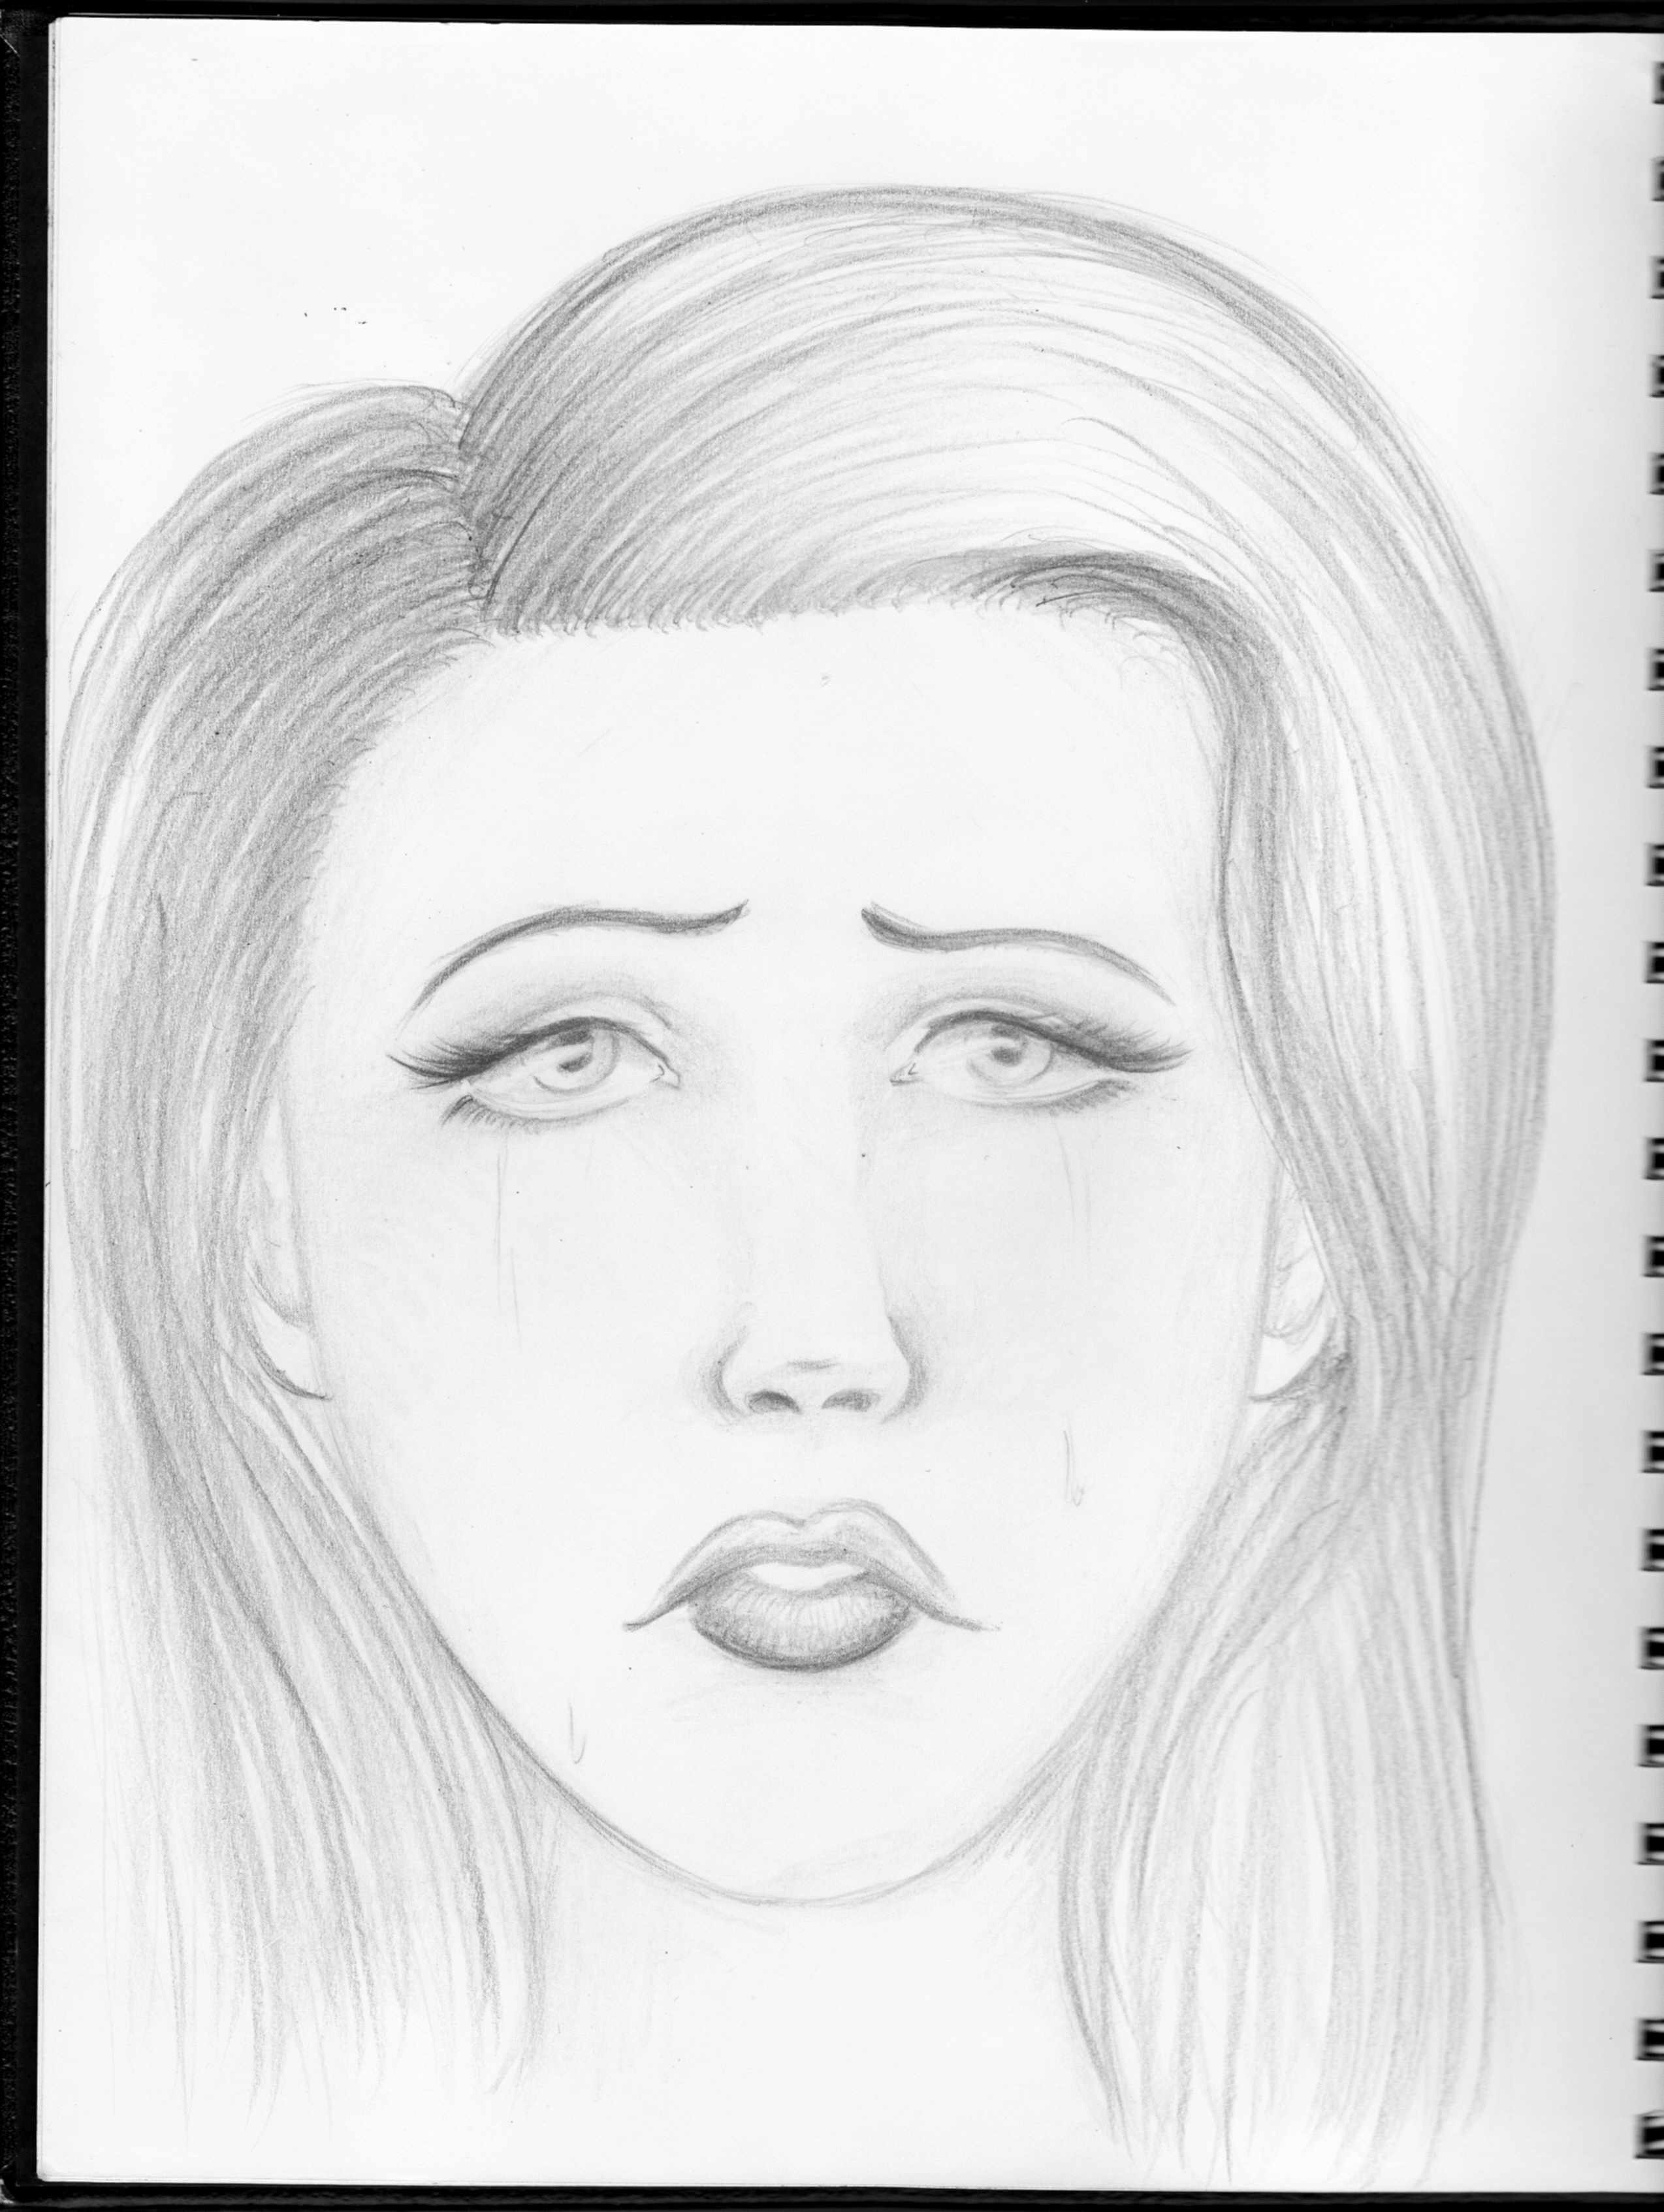 How To Draw A Sad Face : Artist